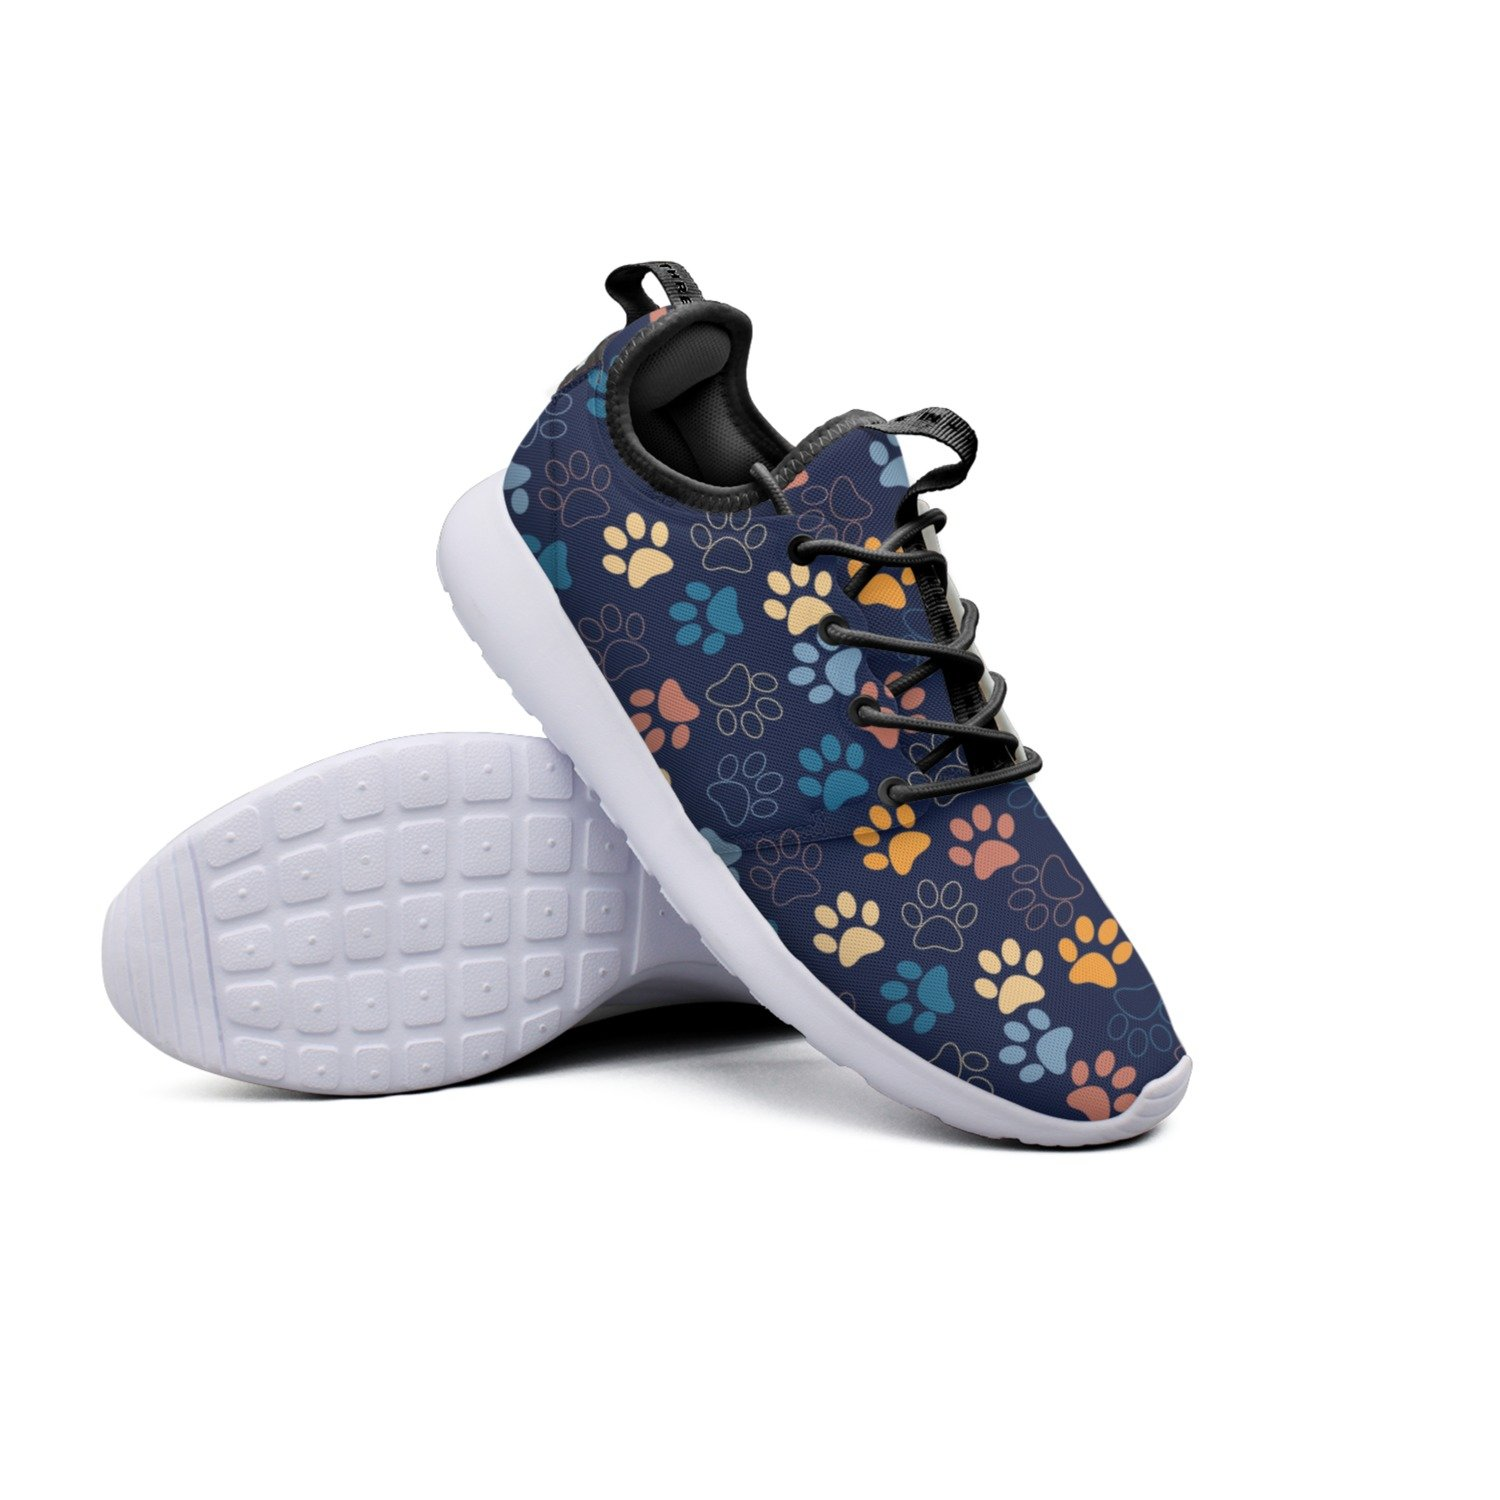 FUFGT Paw Party Supplies Womans Net Running Shoes Climbing Comfortable